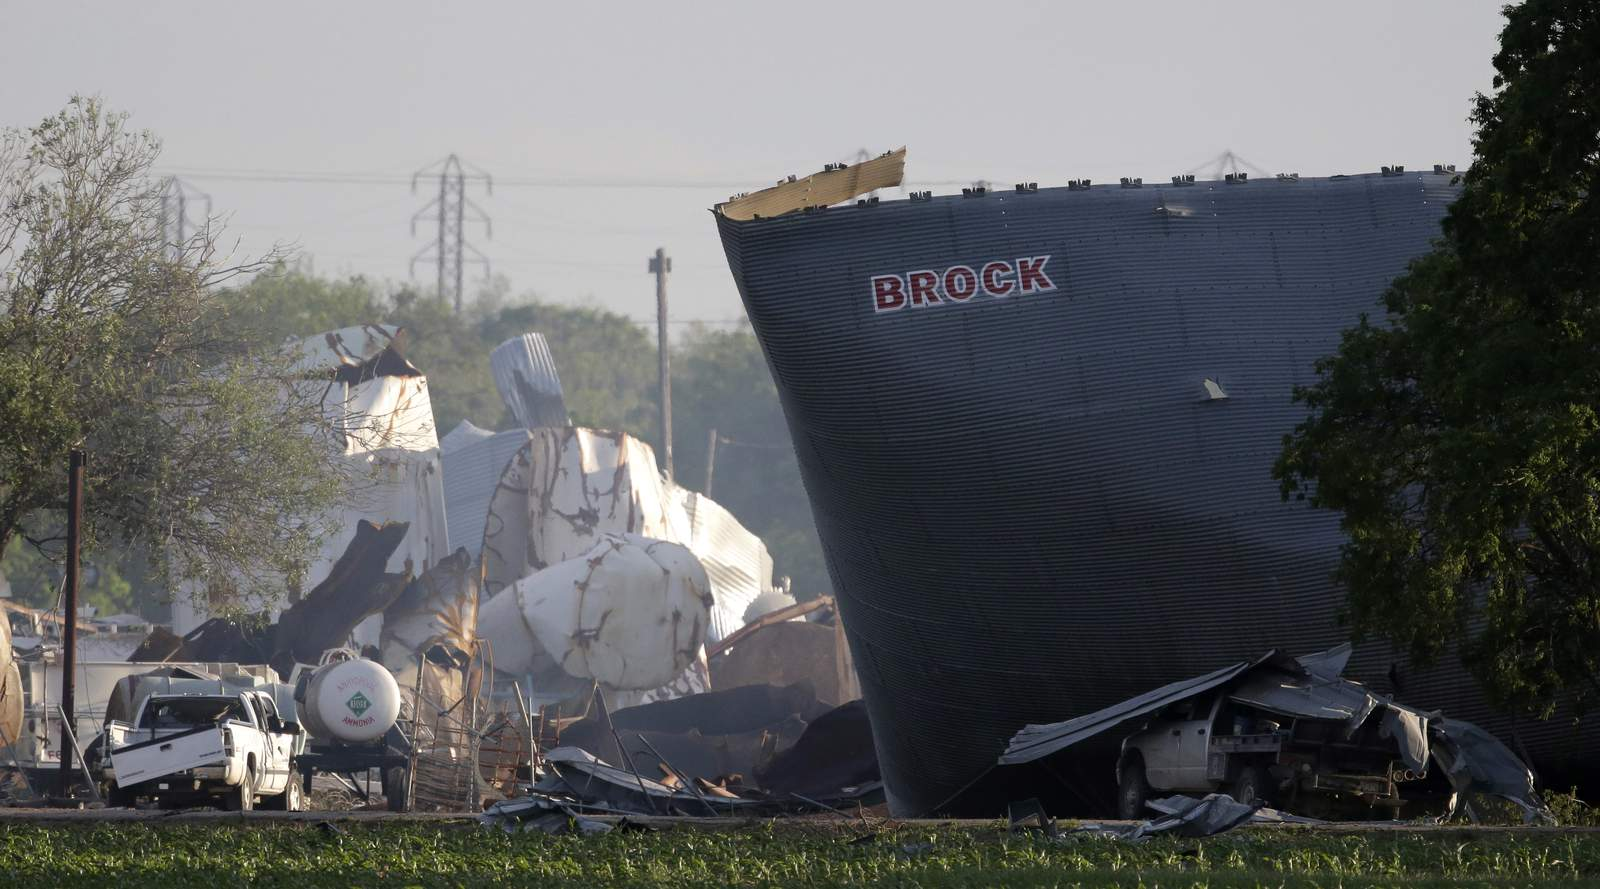 """FILE - In this April 18, 2013 file photo, mangled debris of the West Fertilizer Co. plant is seen, a day after an explosion leveled the plant in West, Texas. Images of a massive explosion in the Lebanese capital looked depressingly familiar to West, Texas Mayor Tommy Muska, whose small town in 2013 was partly leveled by one of the deadliest fertilizer plant explosions in U.S. history. """"I don't know what people were thinking about storing that stuff,"""" Muska said, Wednesday, Aug. 5, 2020. (AP Photo/Charlie Riedel, File)"""